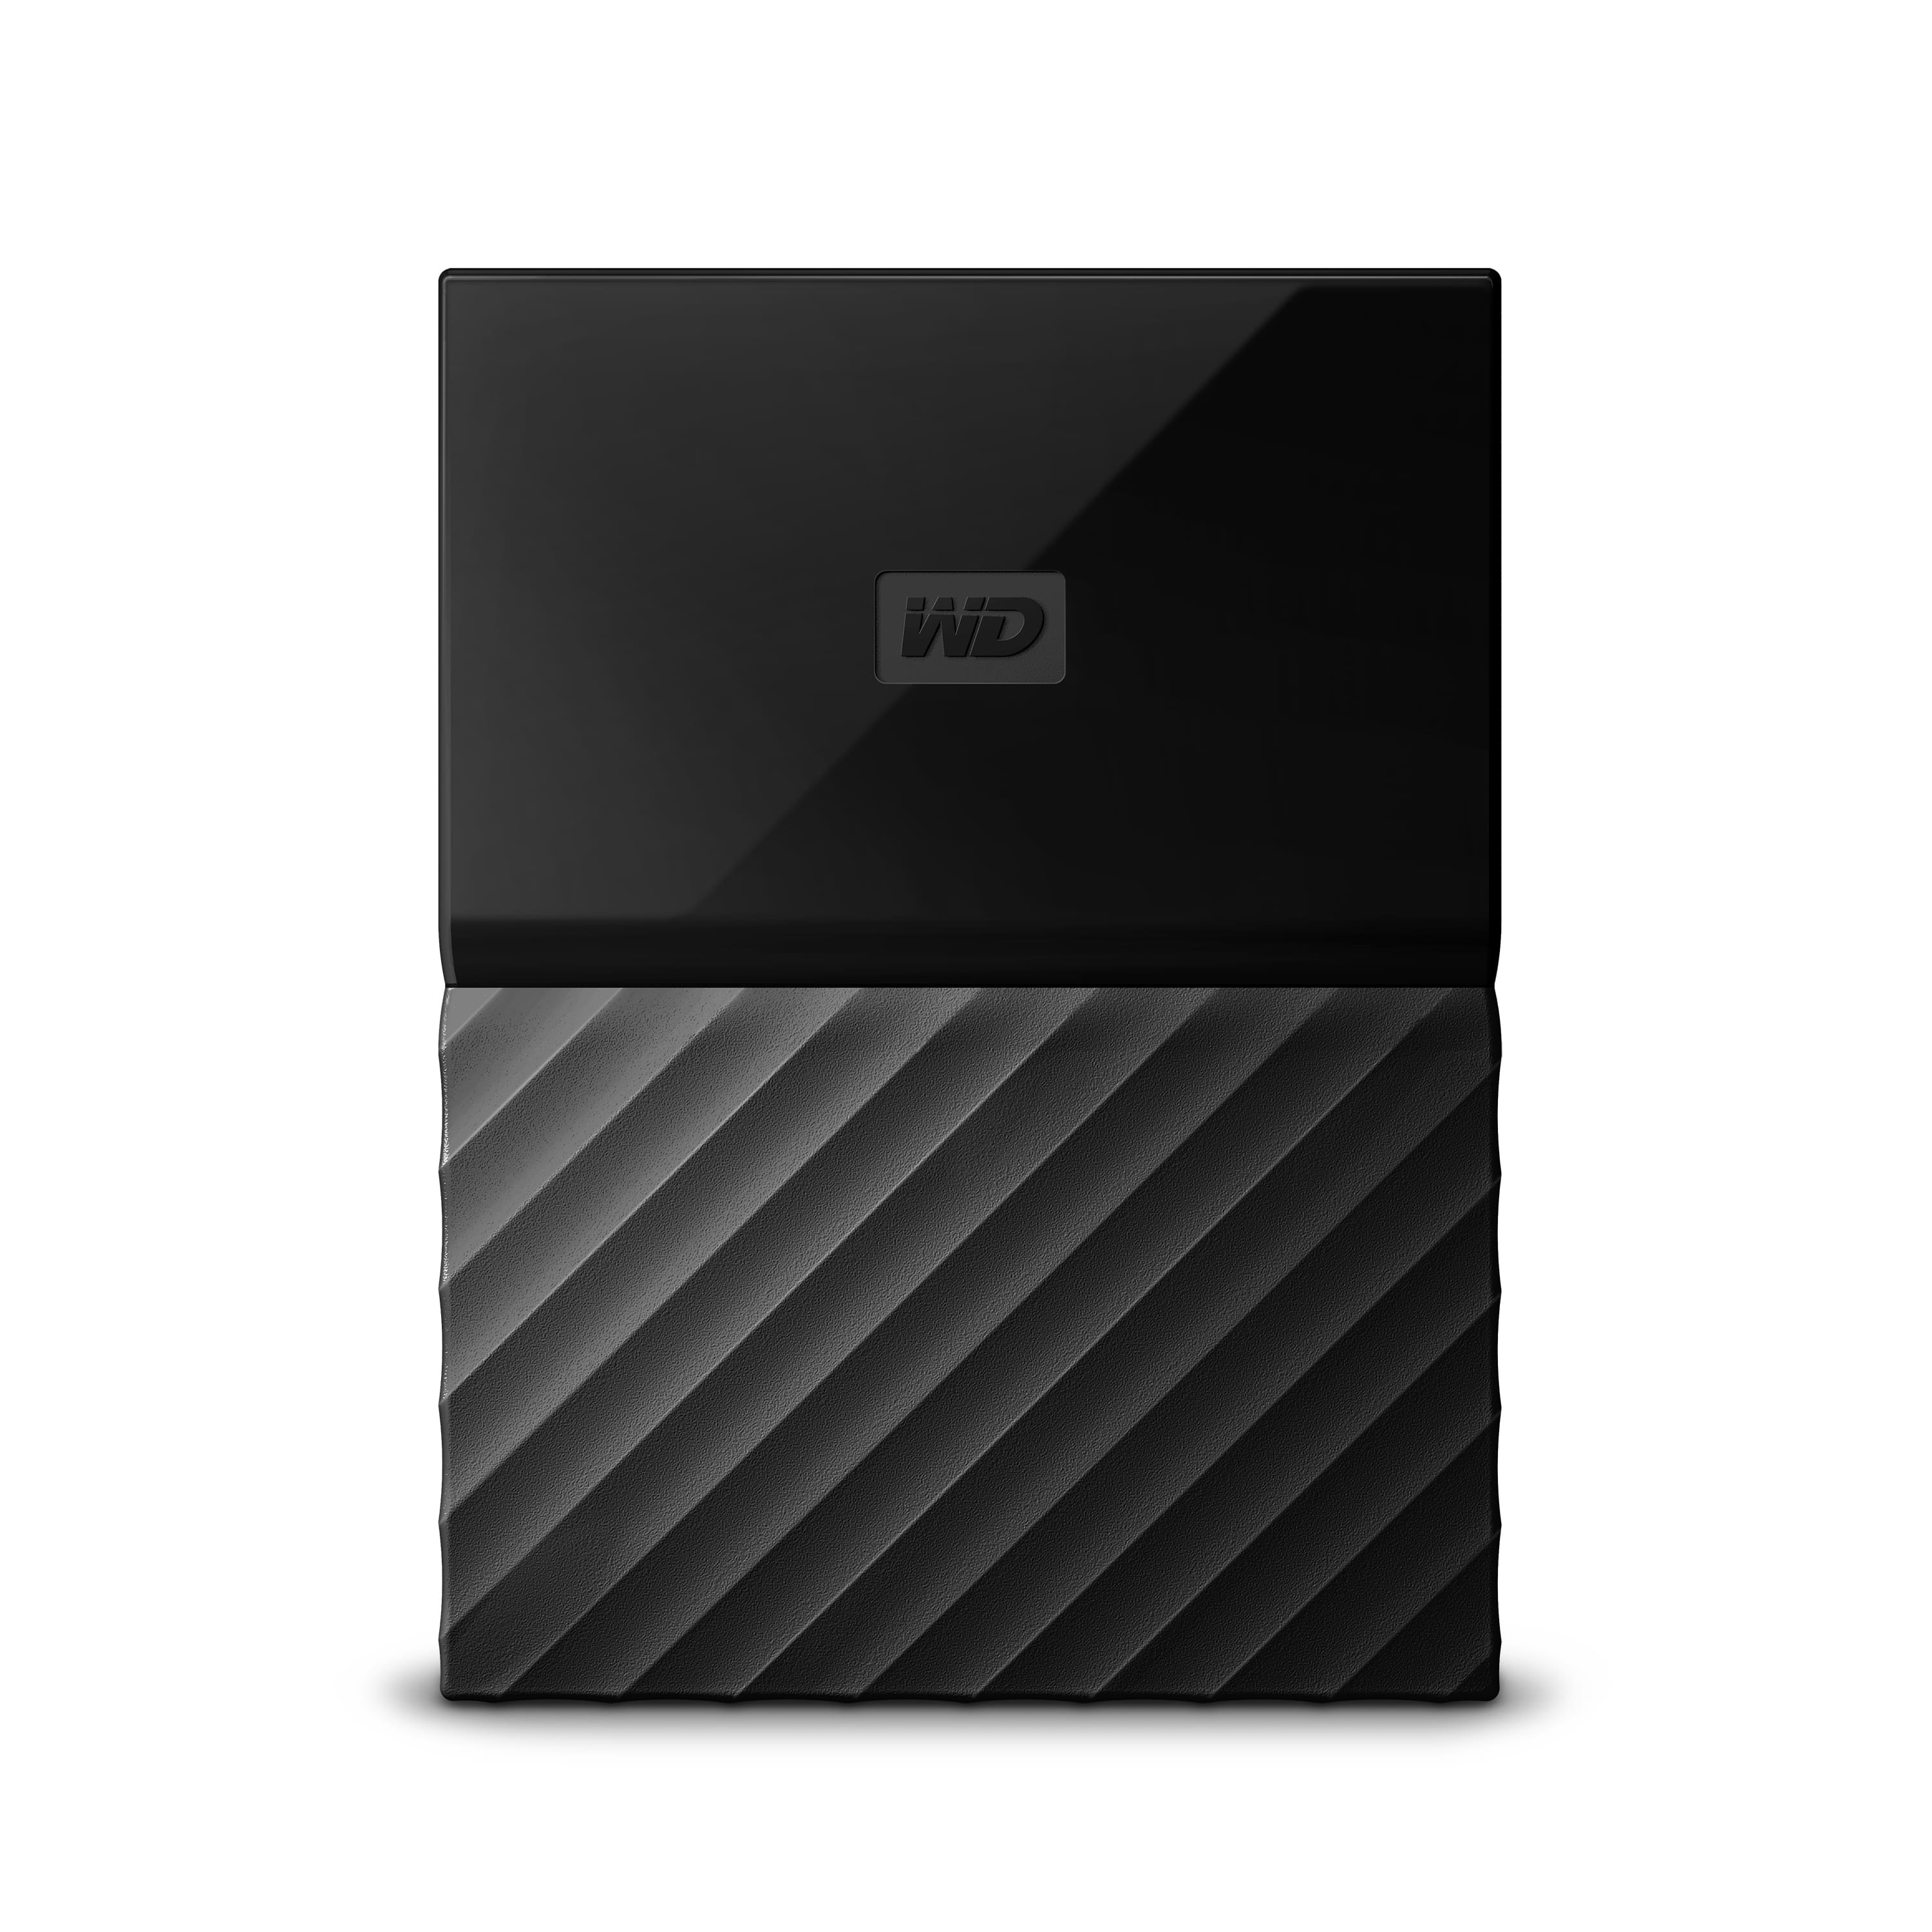 $19 -  Western Digital My Passport 2 Terabyte Portable Black External Hard Drive -YMMV